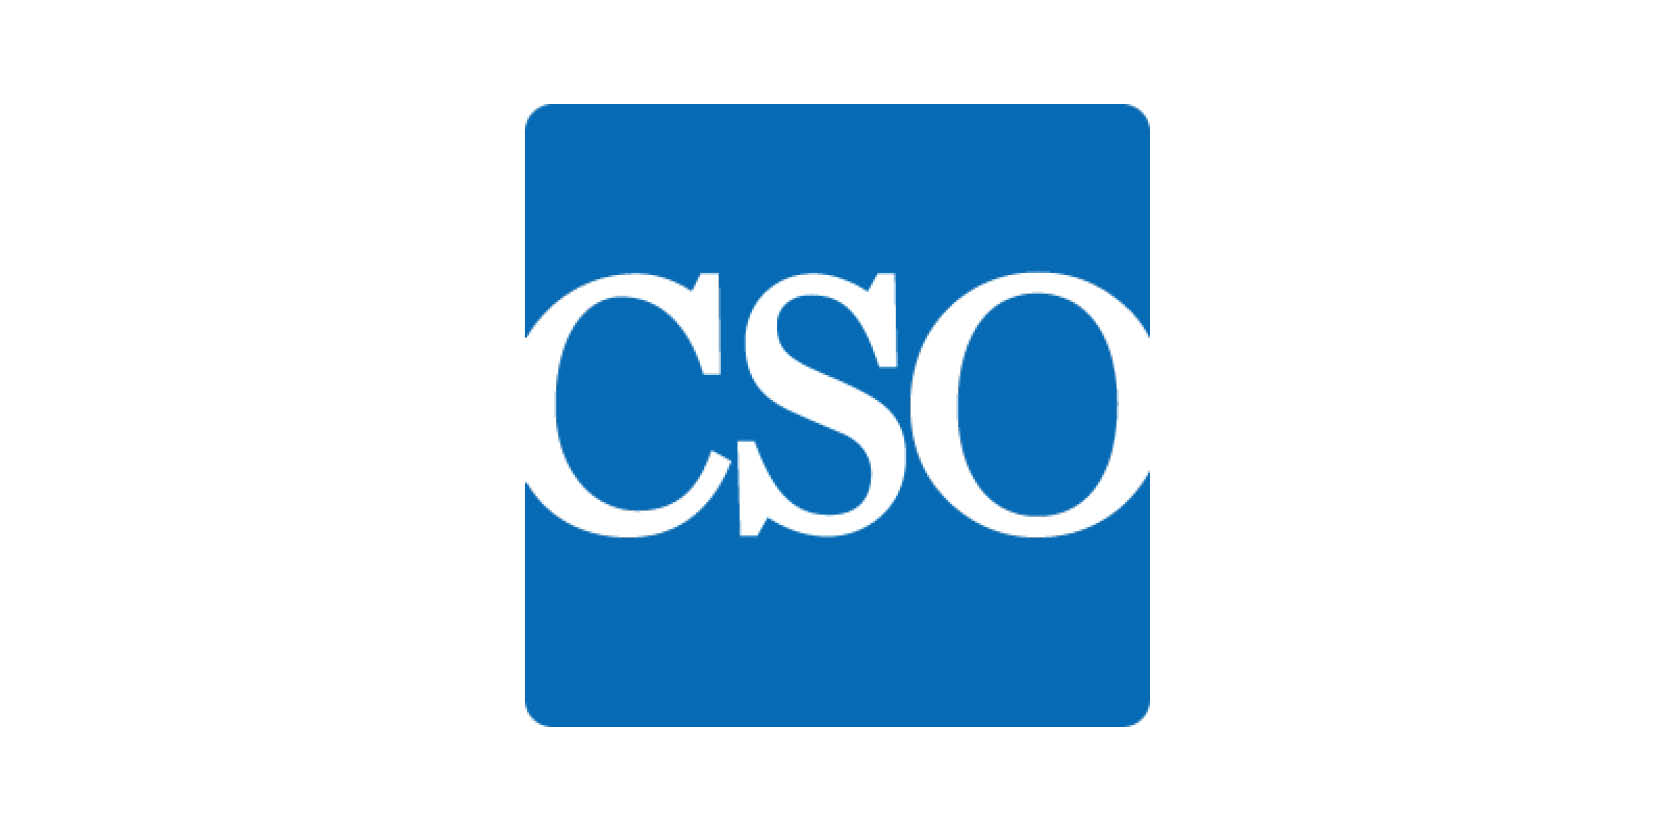 CSOOnline: Do third-party vendors have a bullseye on their backs?